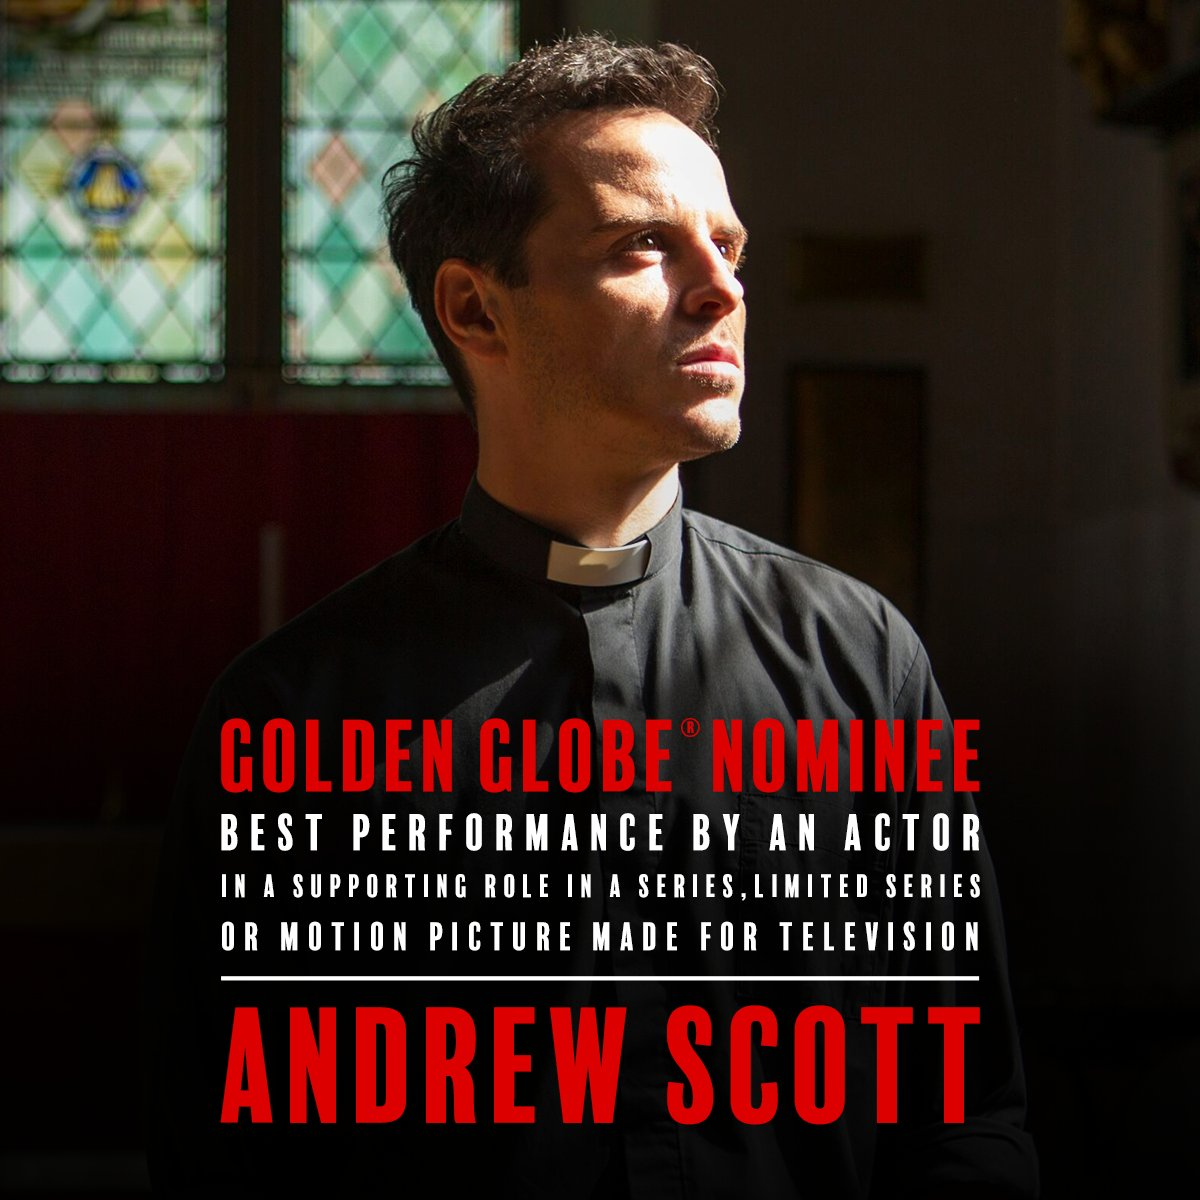 Just when you thought hot priest couldn't get any hotter, he gets a #GoldenGlobes nomination. Help us congratulate our favorite man of the cloth, Andrew Scott! #Fleabag